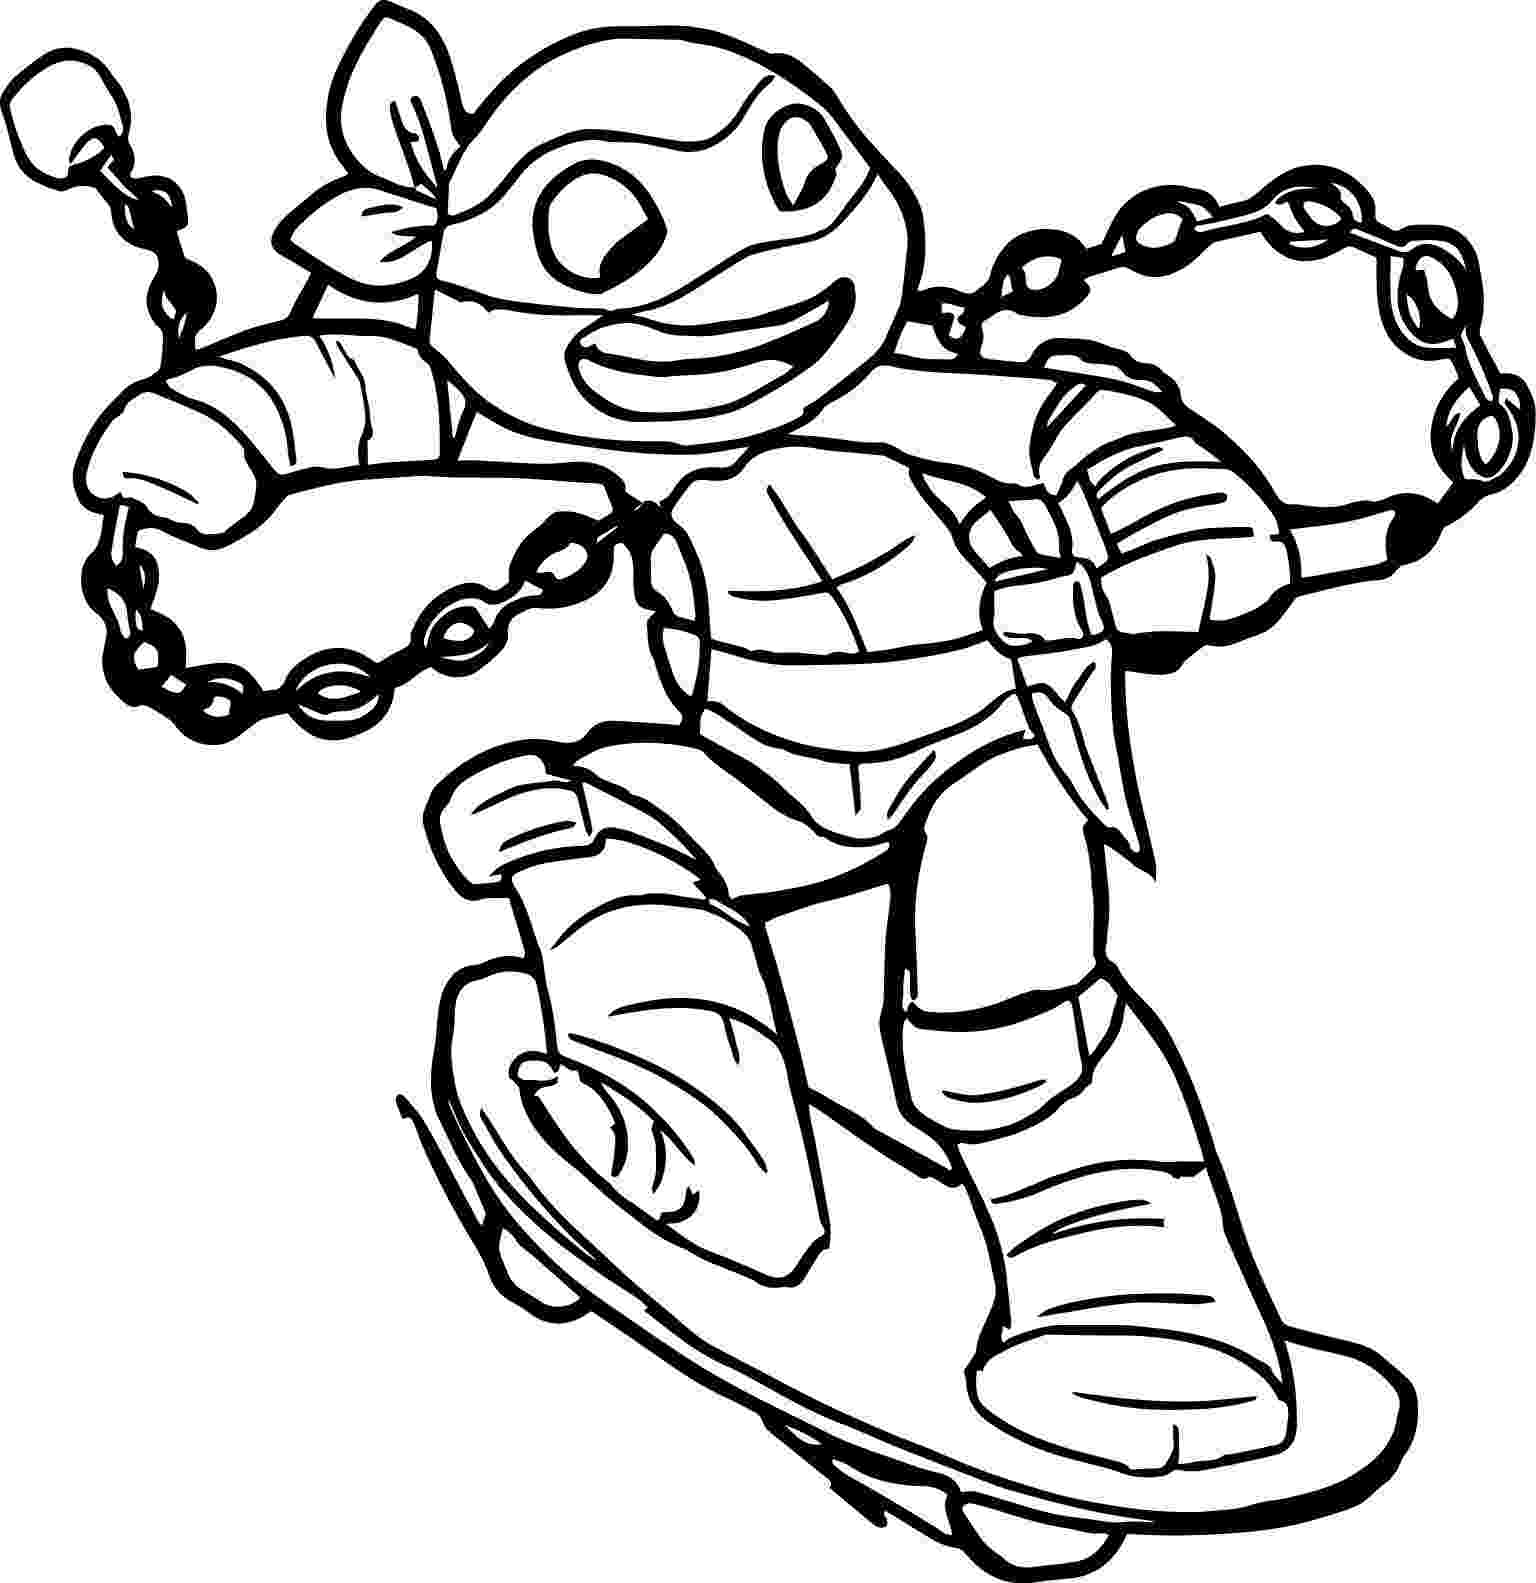 ninja turtles coloring pages for kids teenage mutant ninja turtles coloring pages best turtles pages kids coloring for ninja